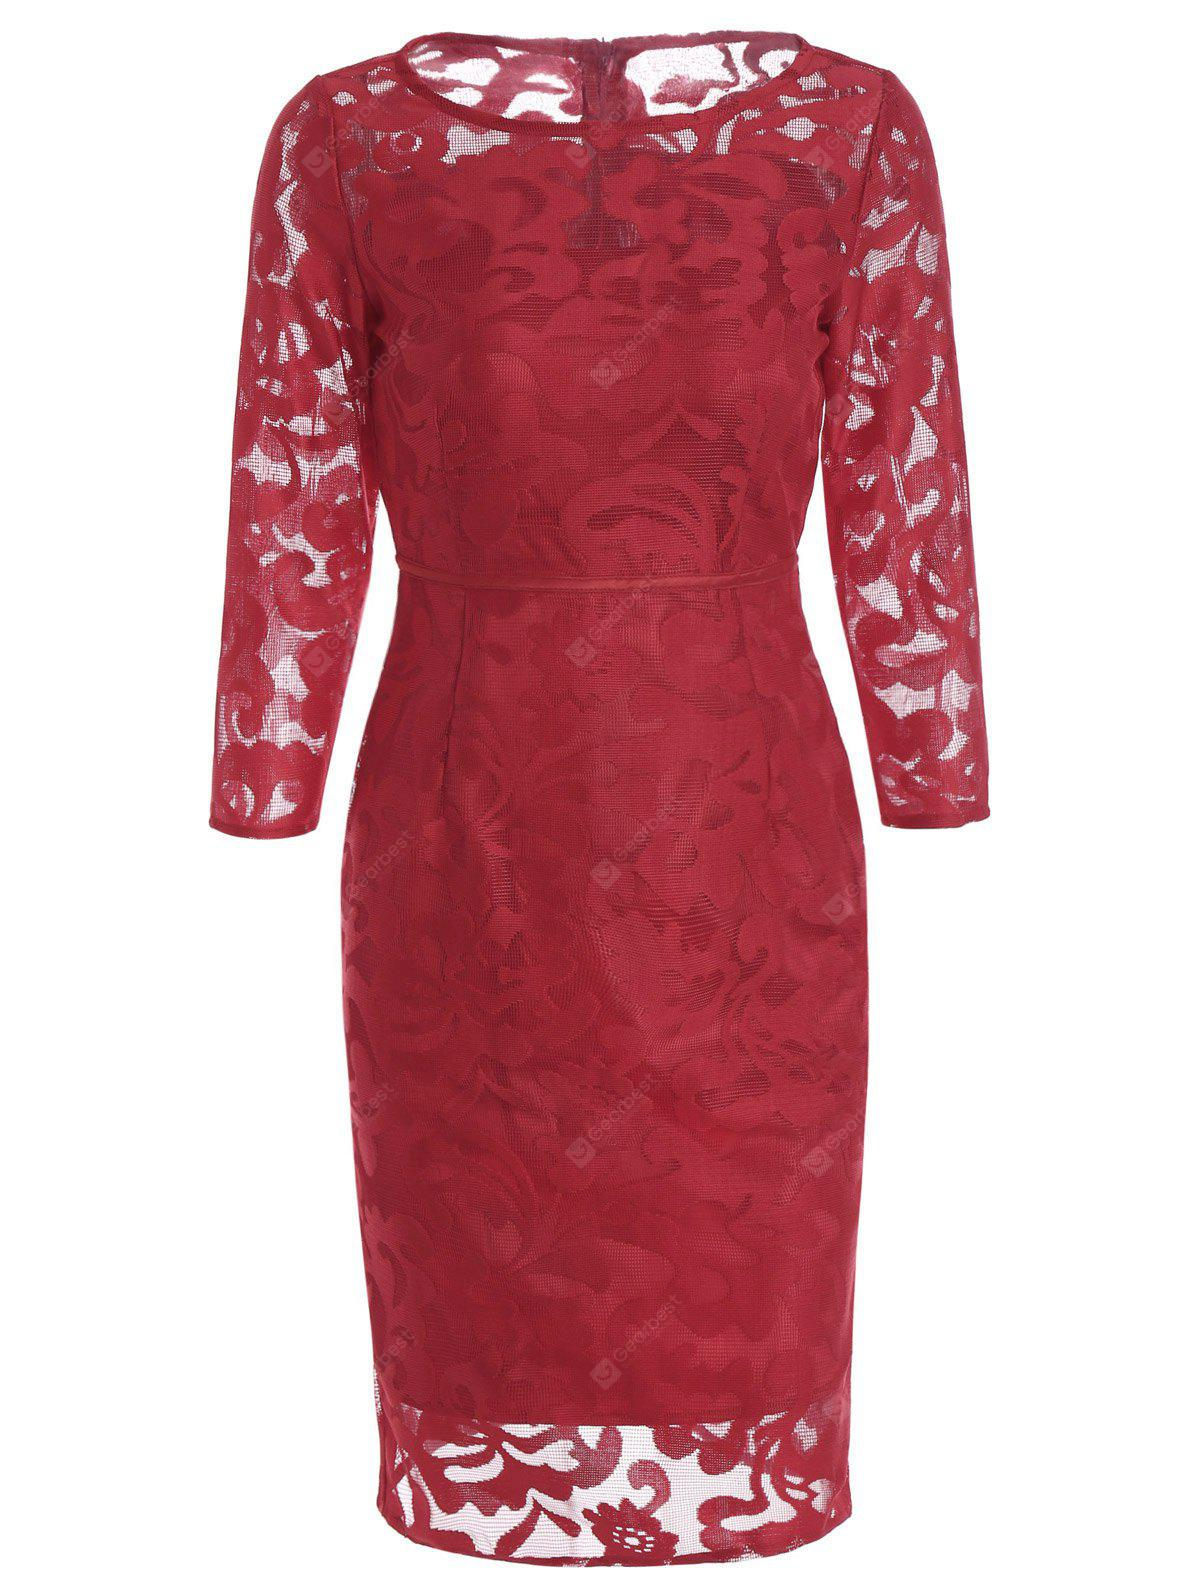 RED M Openwork Semi Sheer High Waist Sheath Dress